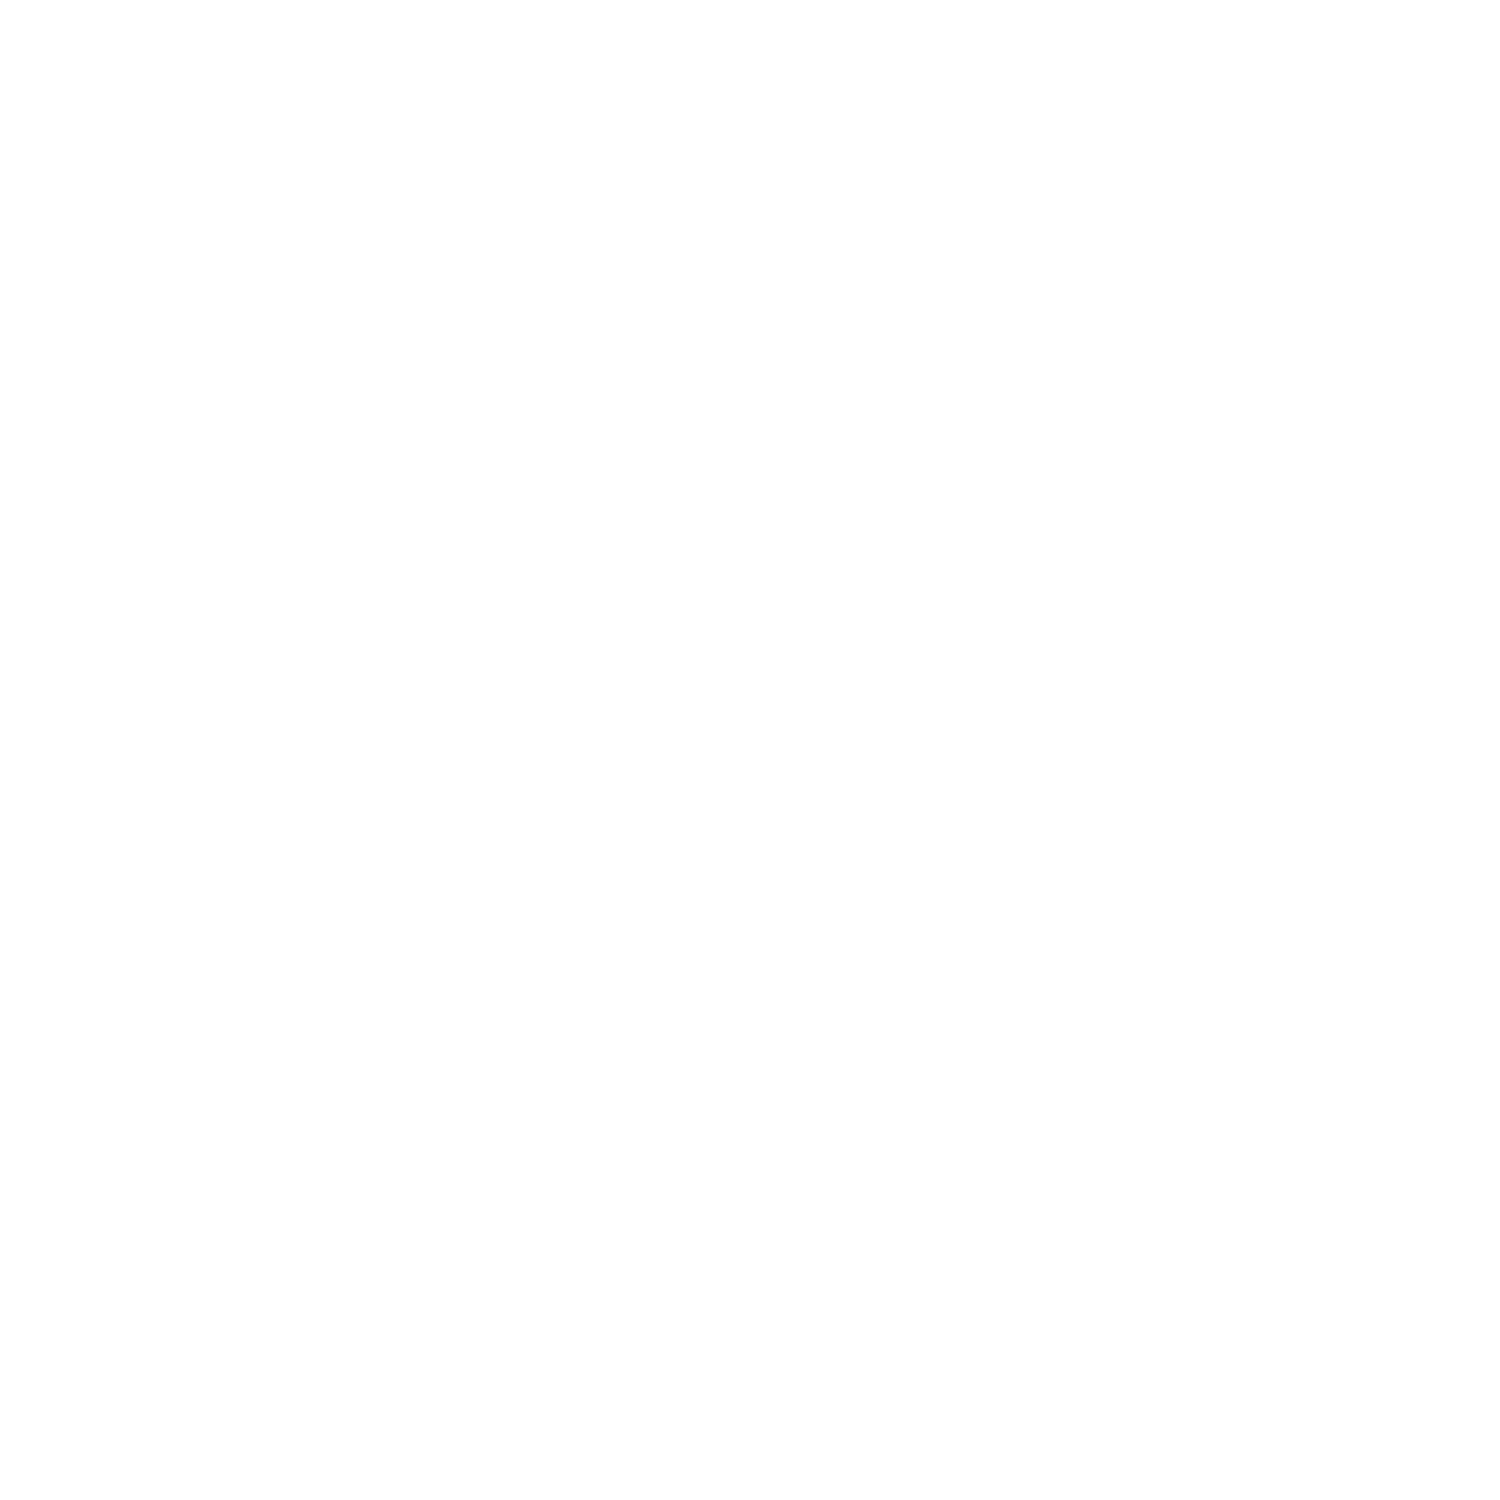 Lobster Express Co.